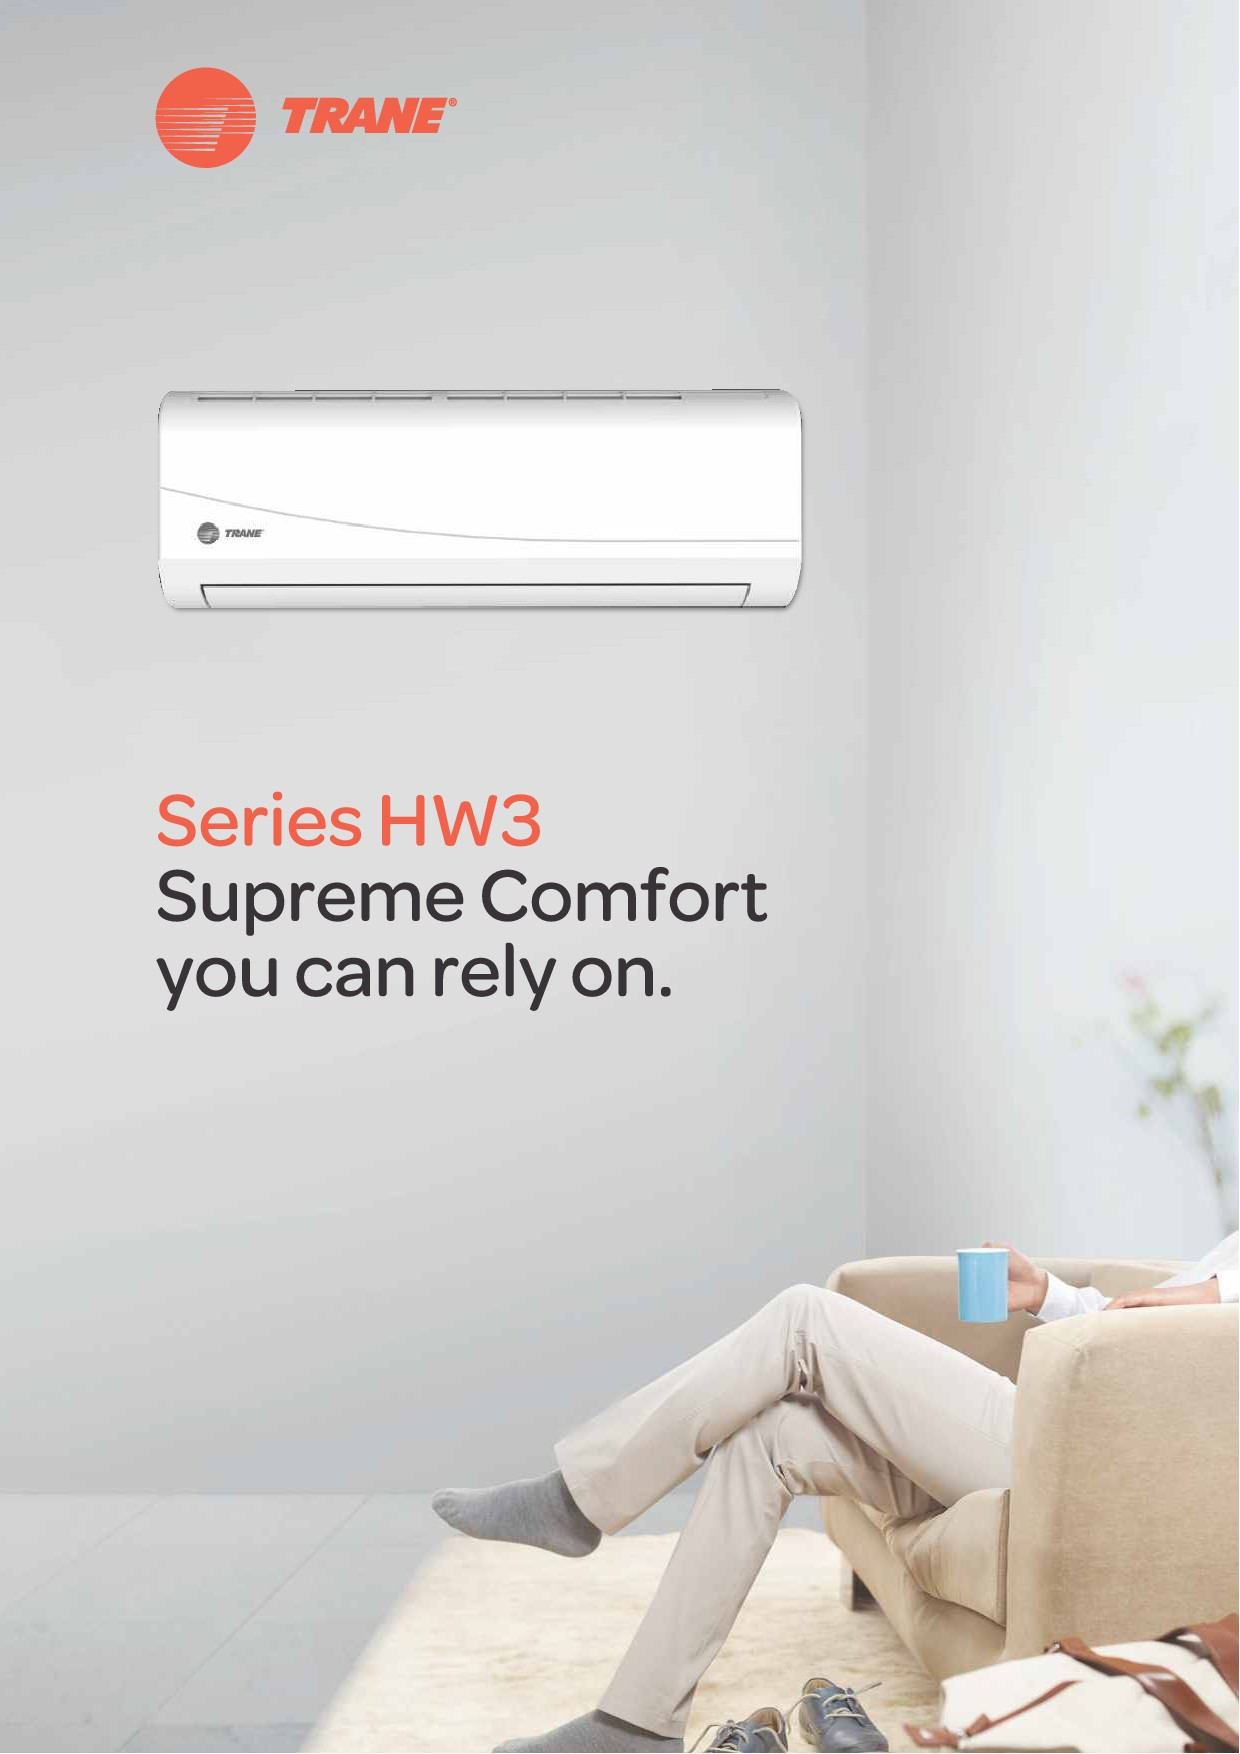 Trane Air Conditioner Products Catalogue